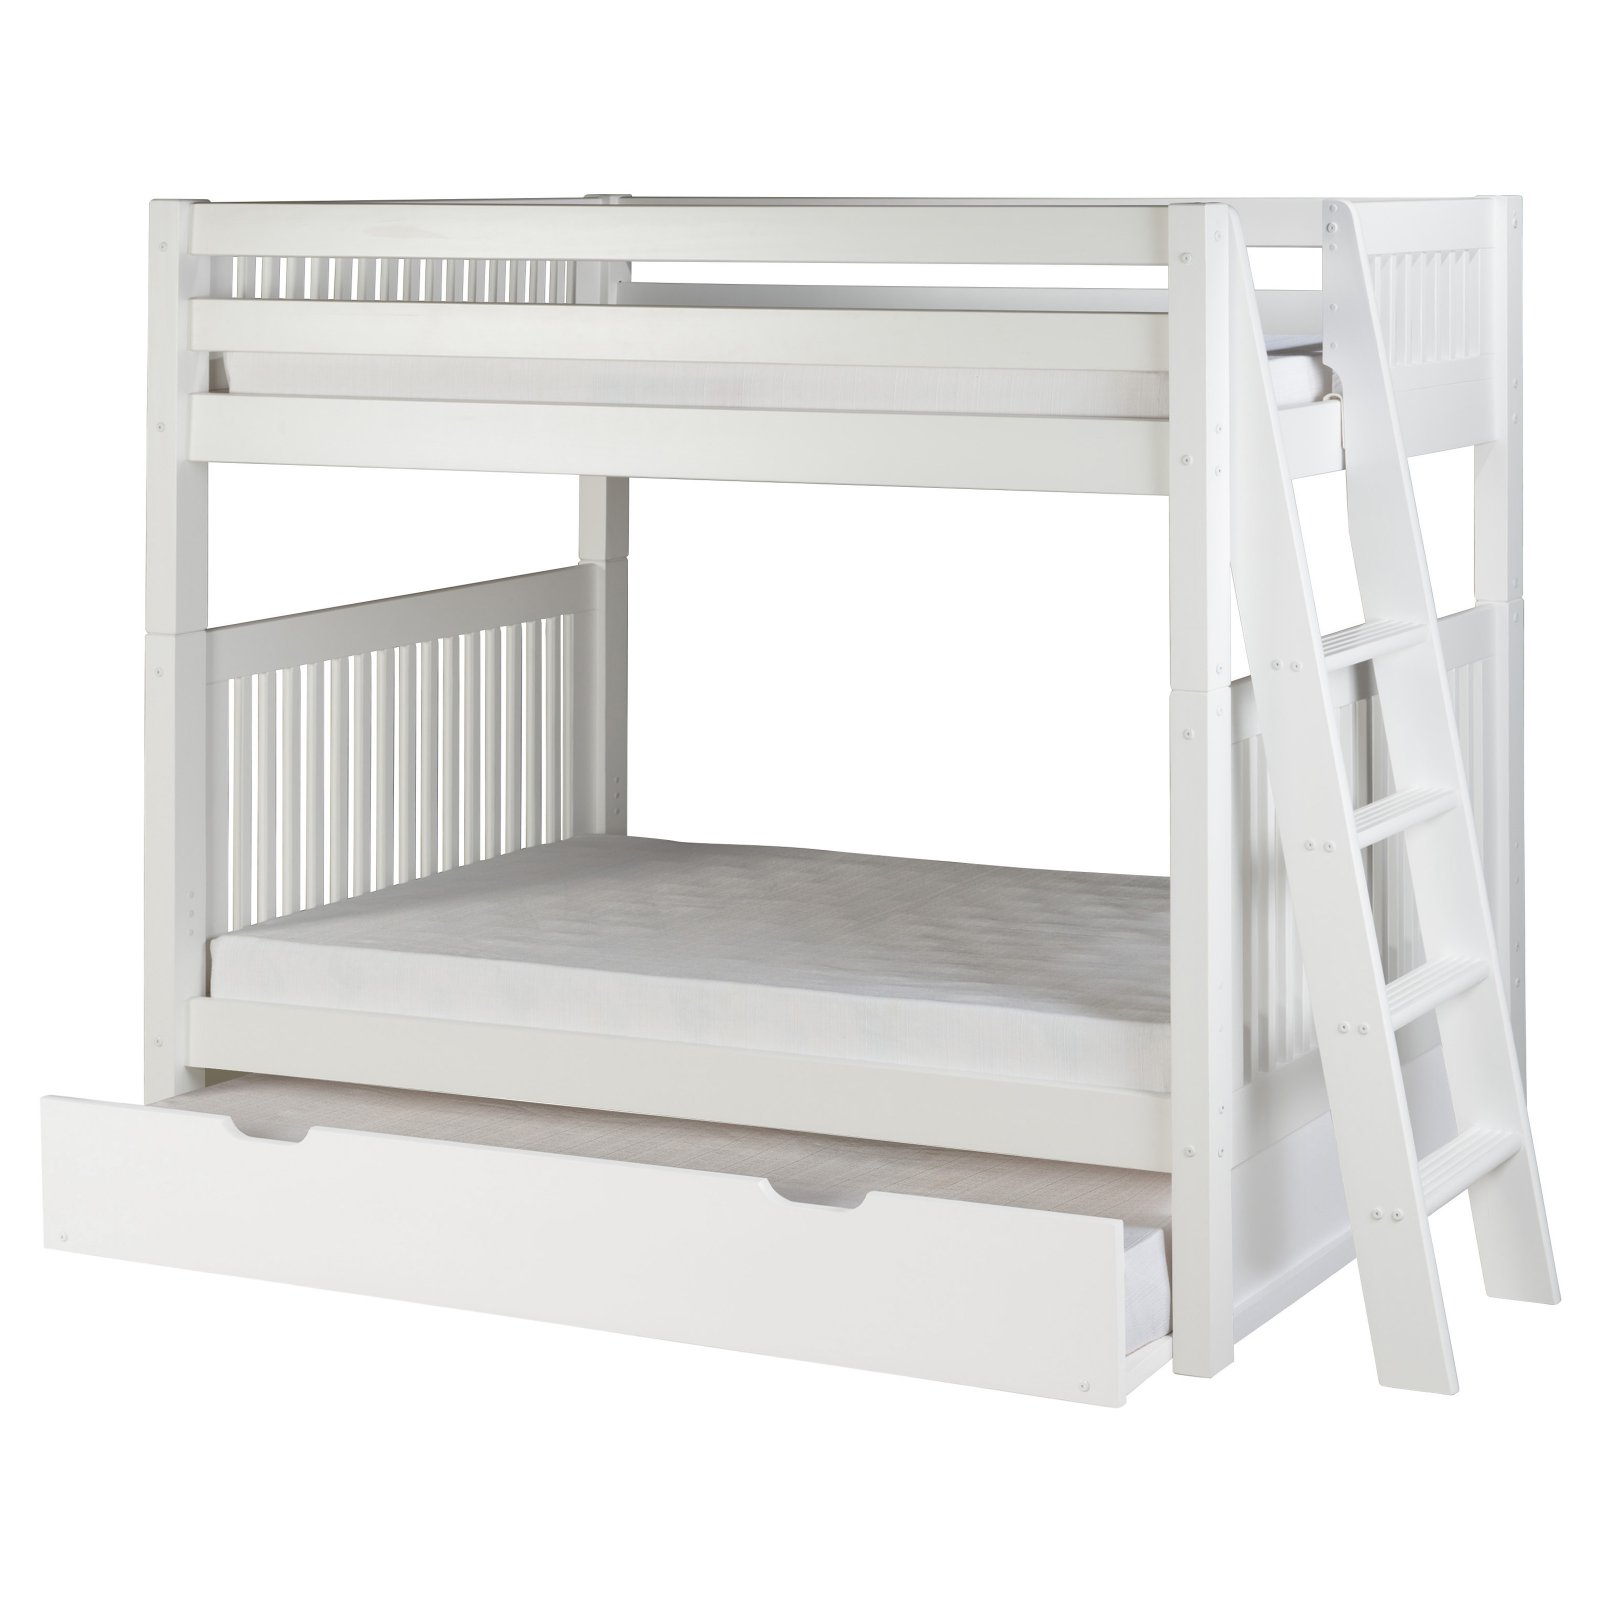 Camaflexi Twin over Twin Bunk Bed - Mission Headboard - Lateral Angle Ladder - White Finish